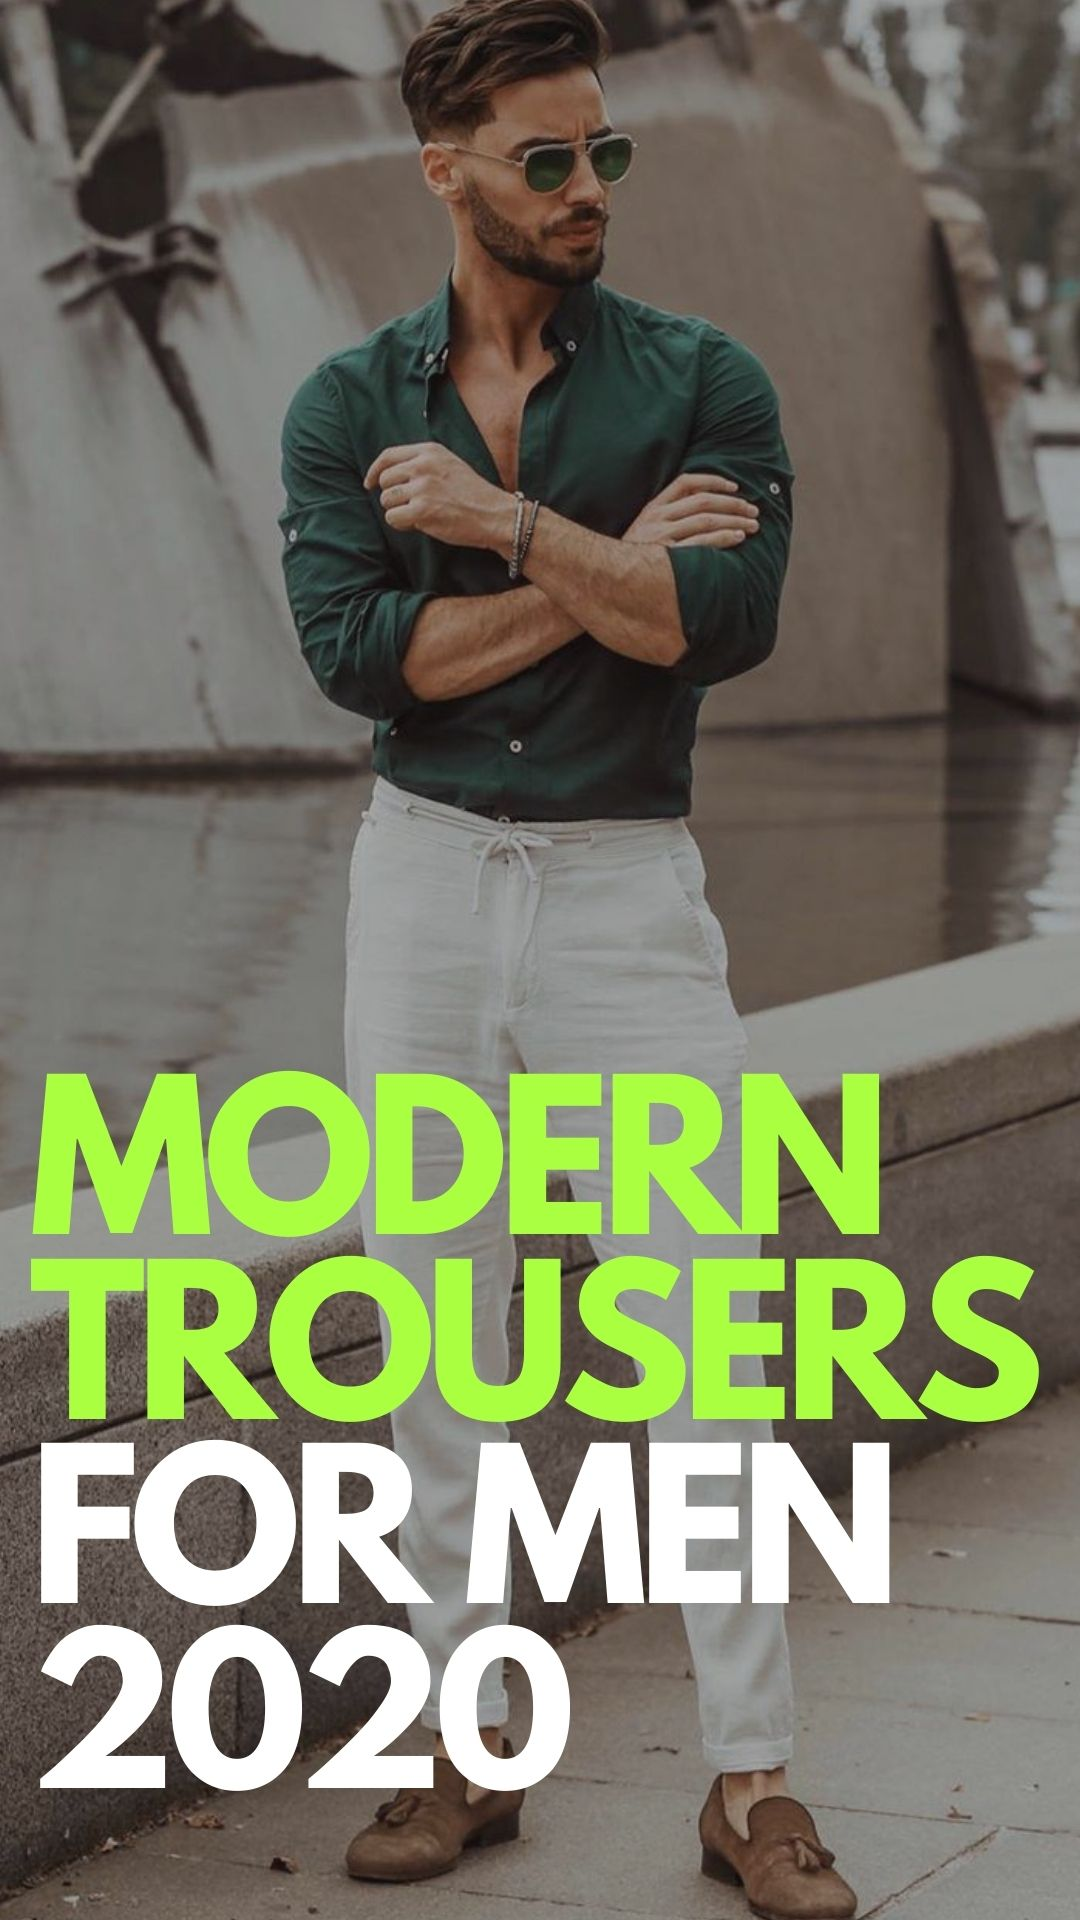 Modern Trouser Outfits for Men 2020